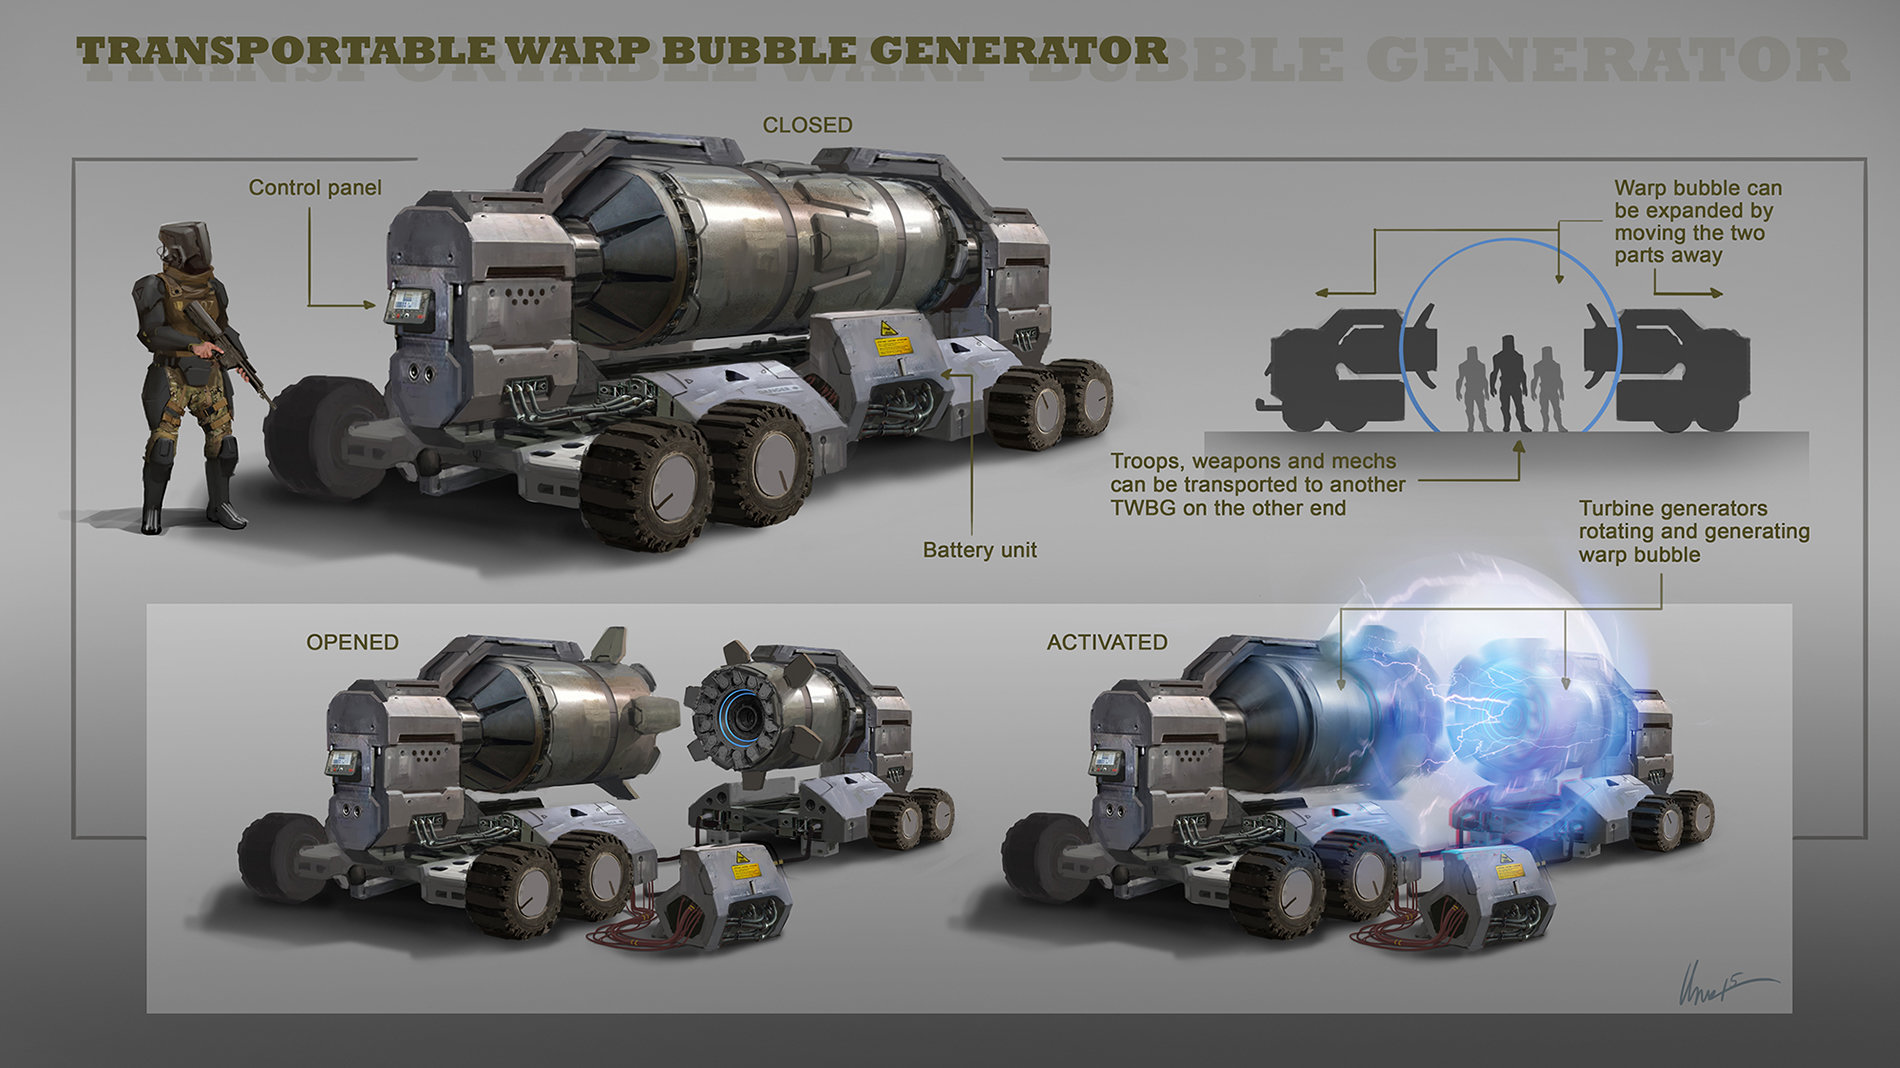 ArtStation - Transportable Warp Bubble Generator, Albert ... |Conceptual Generator Drawing